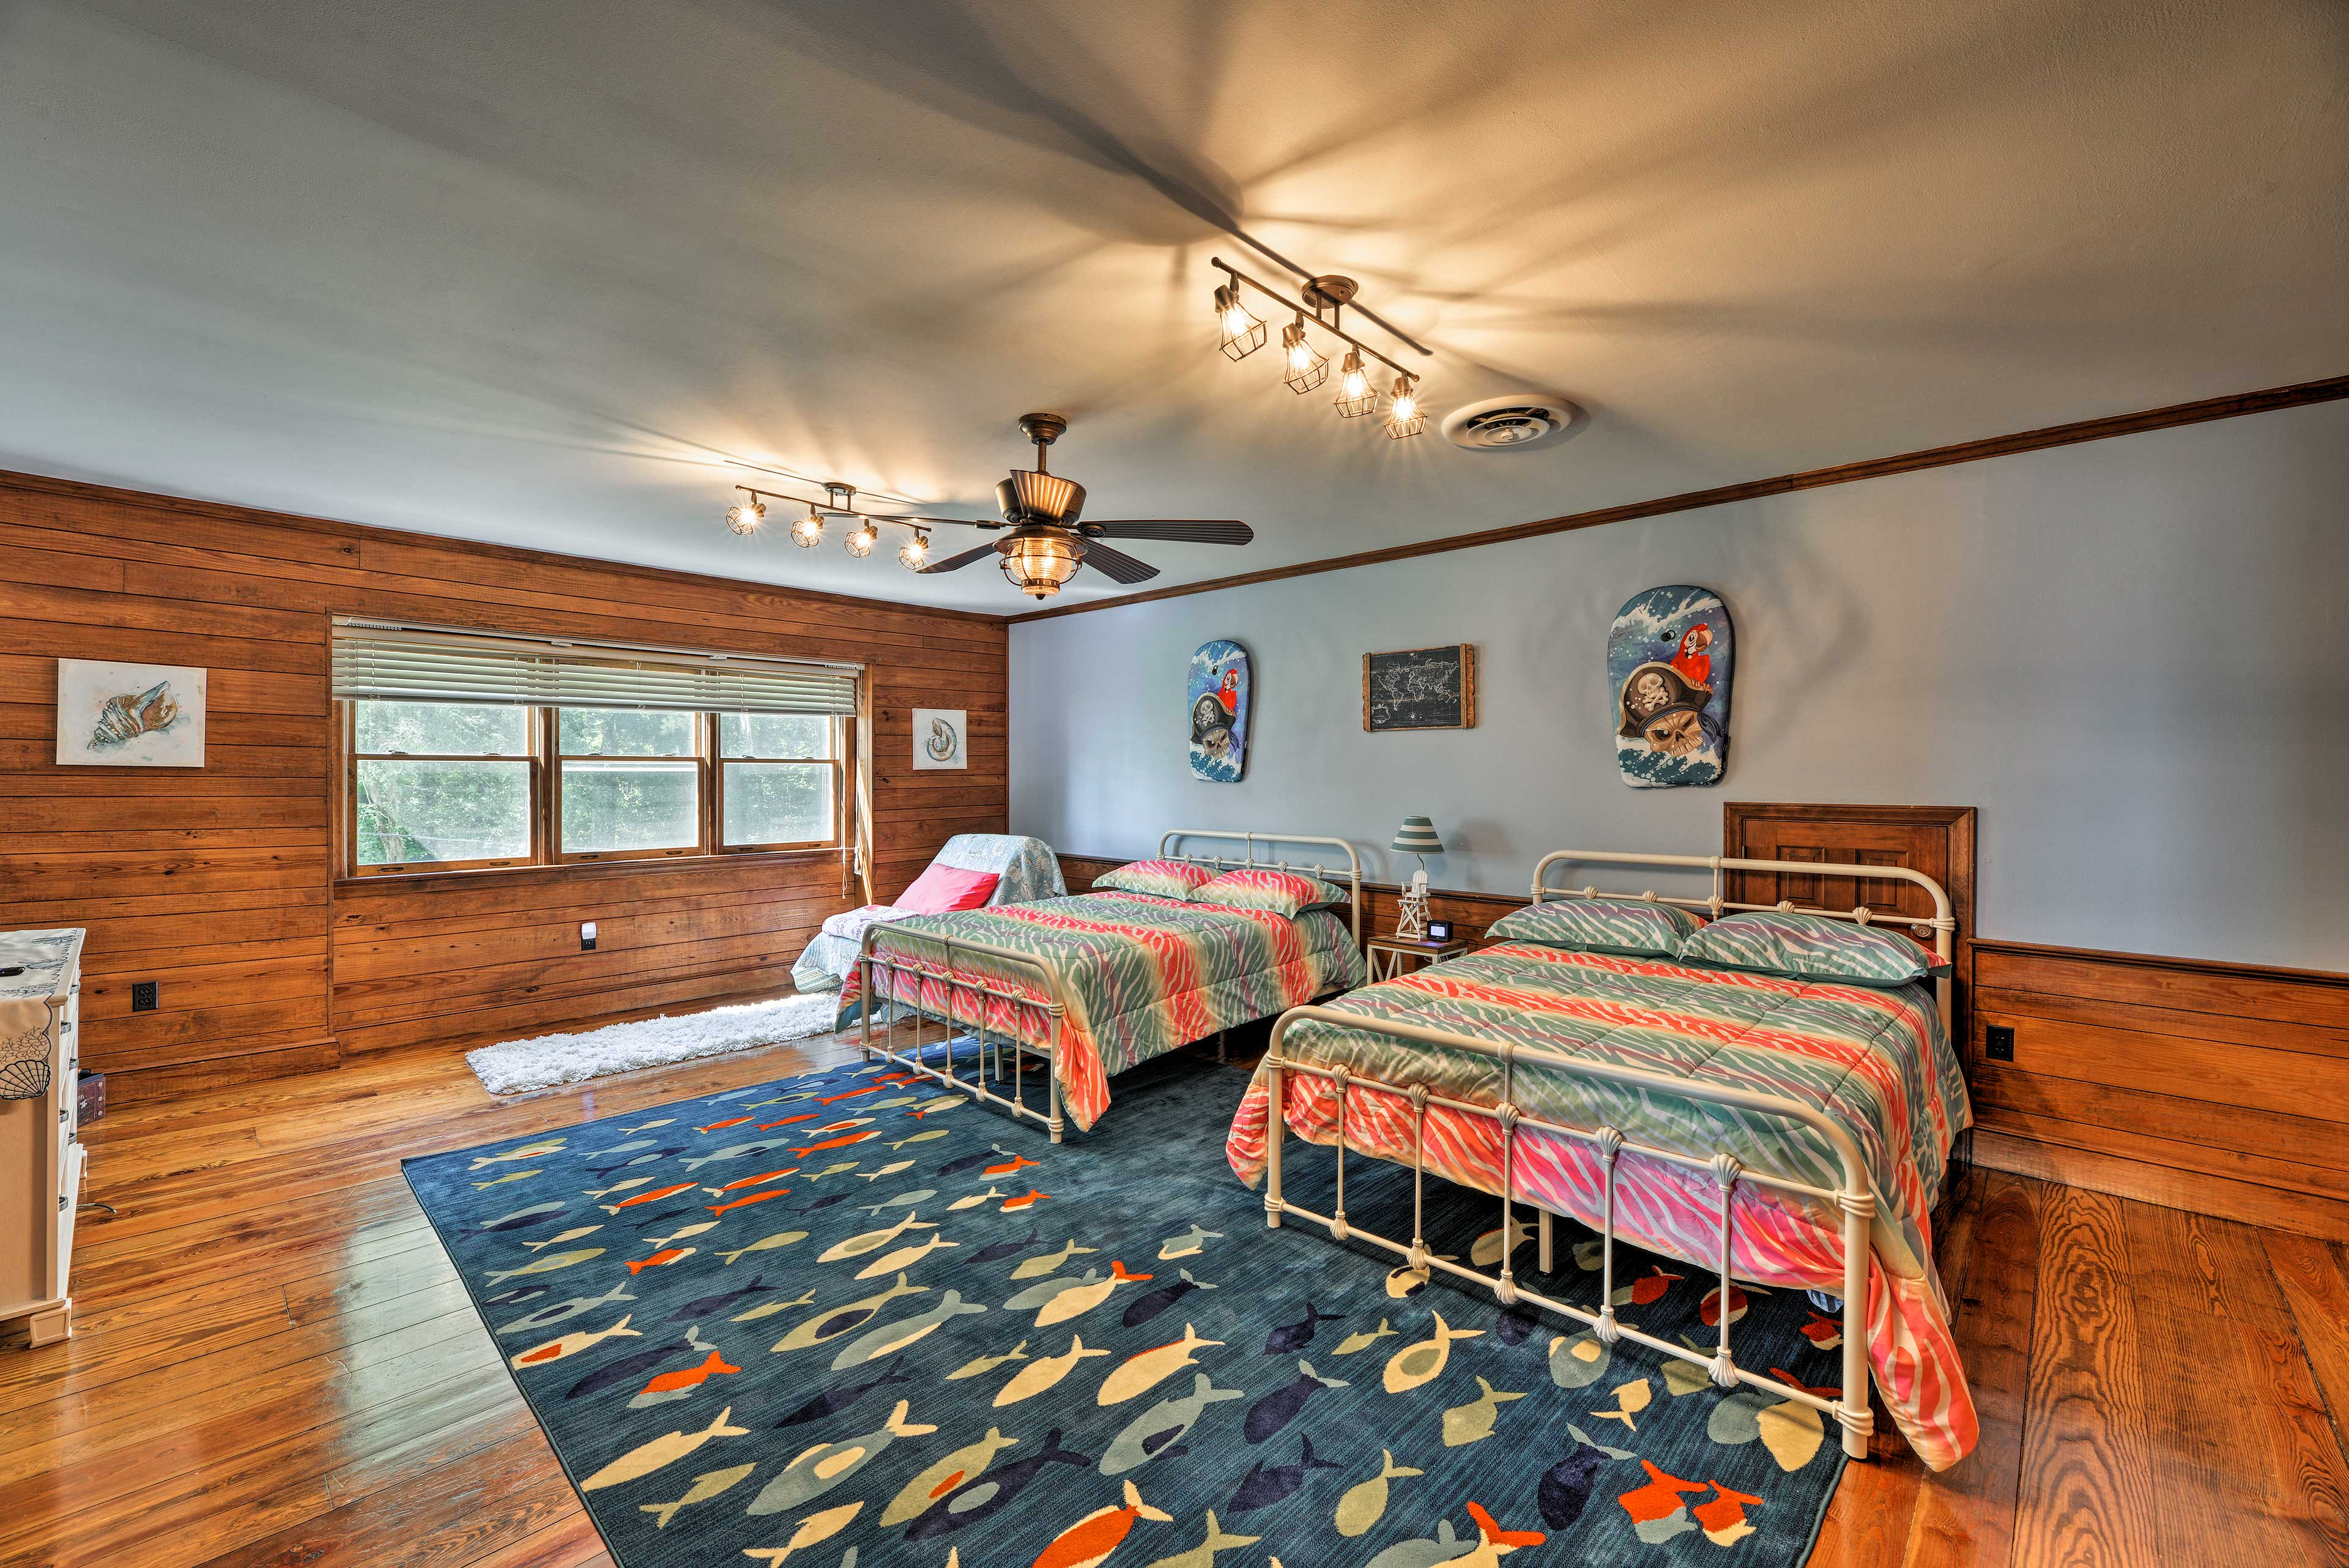 Four guests will sleep soundly in these 2 full-sized beds.